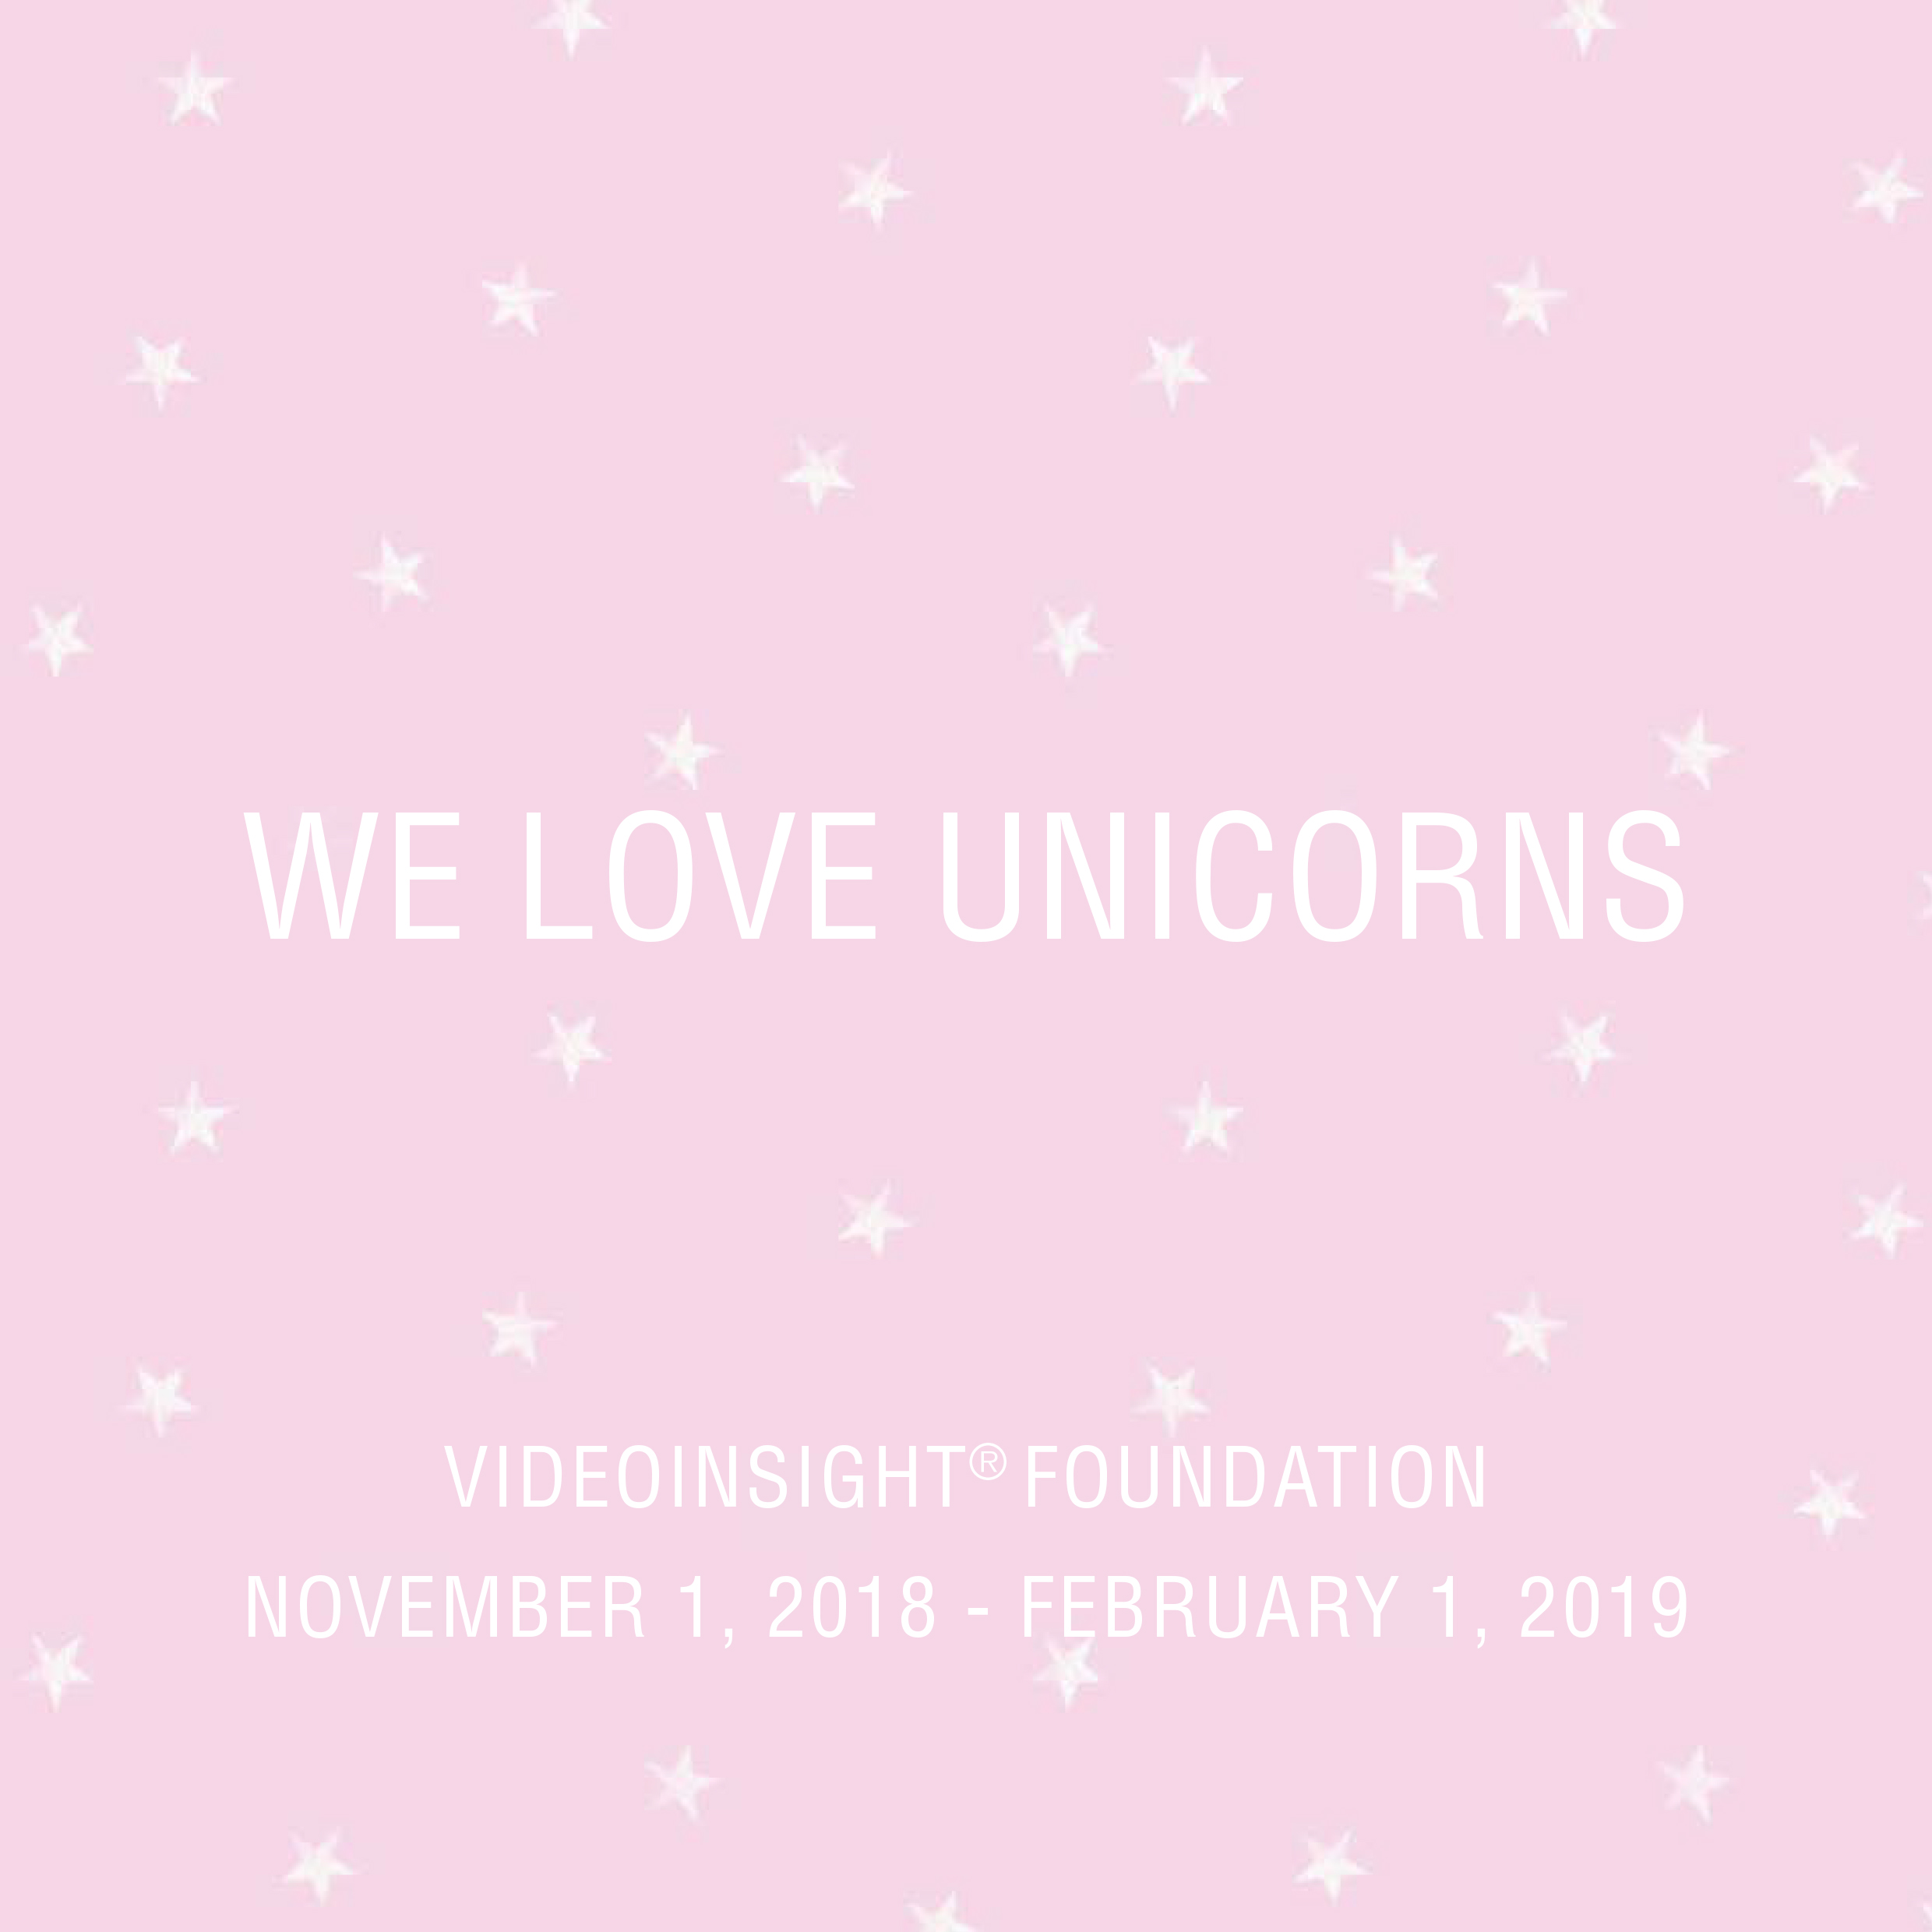 WE_LOVE_UNICORNS